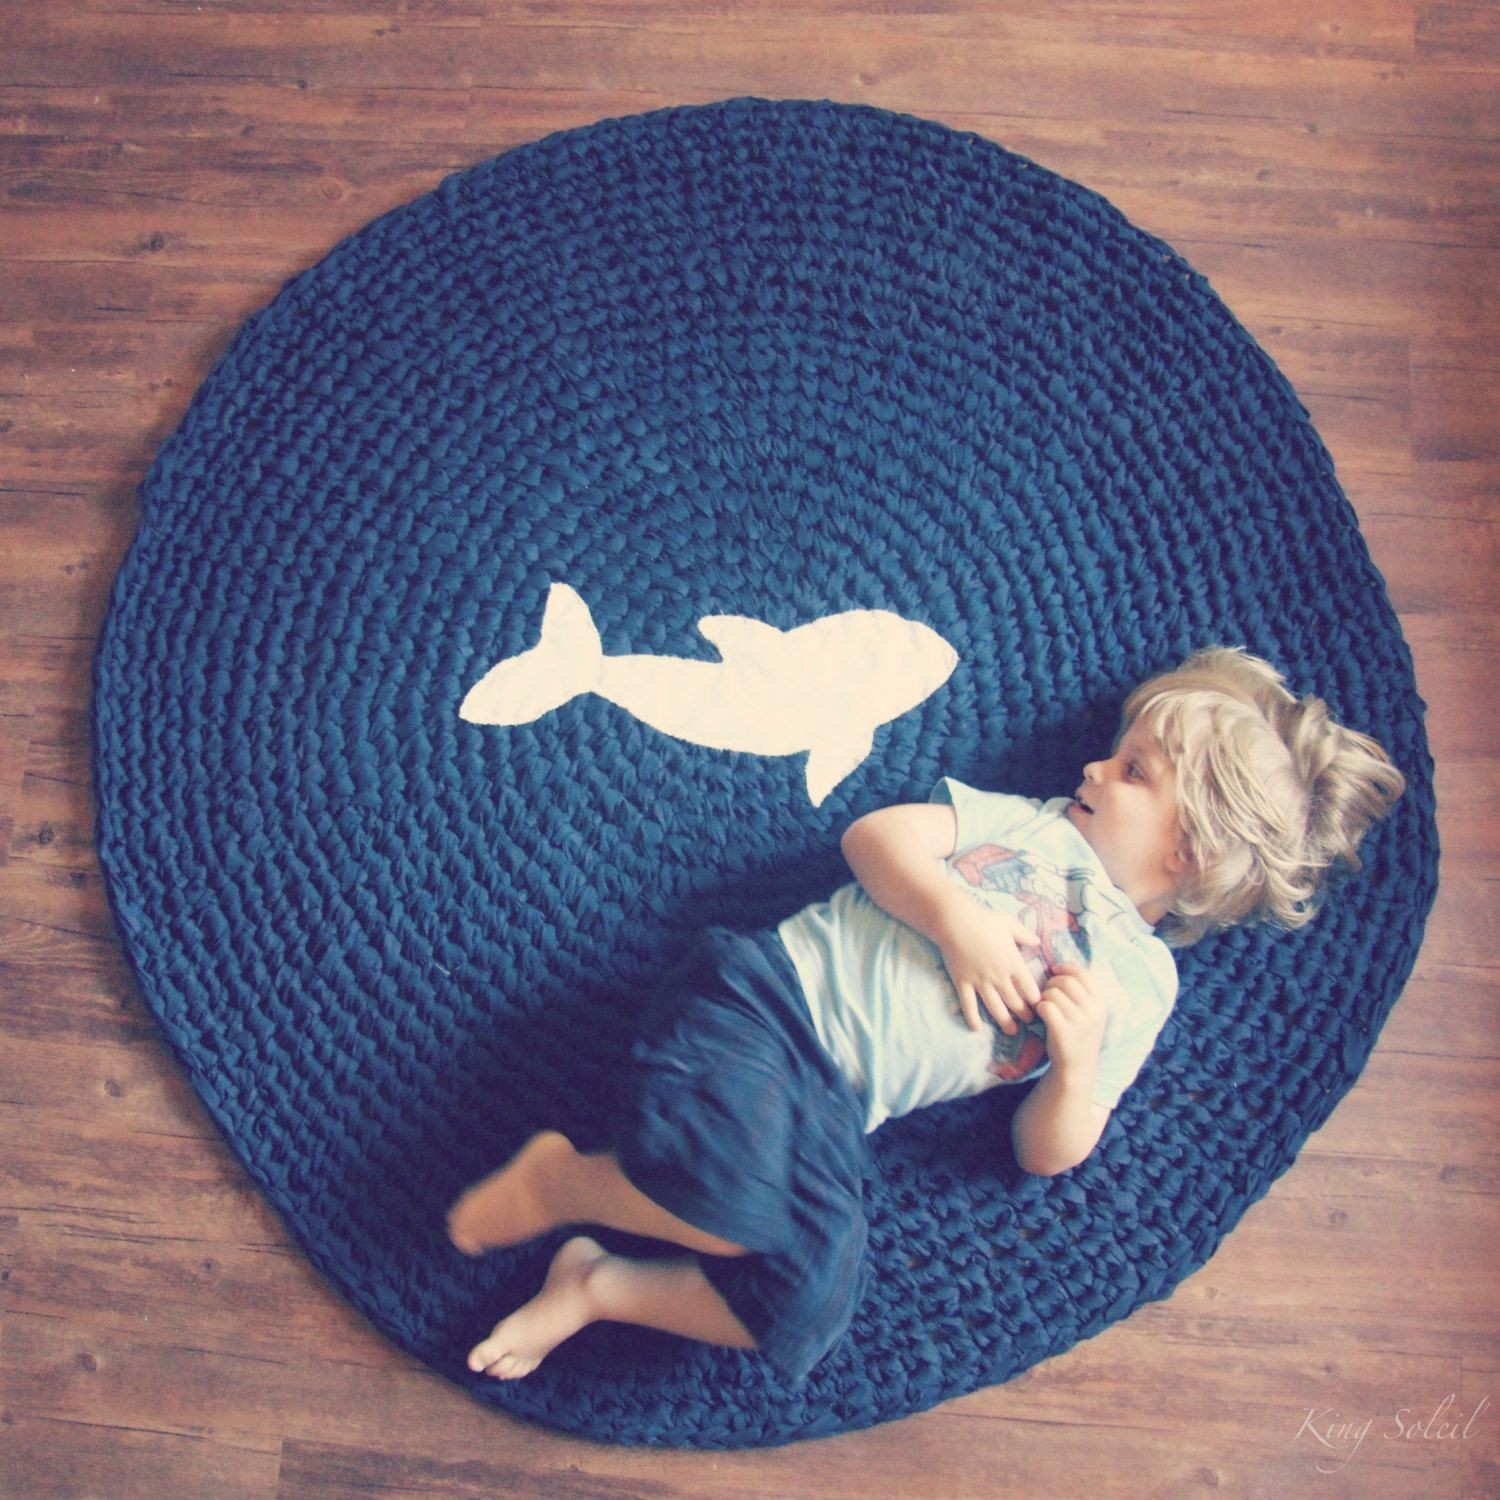 Crochet Whale Rug Nautical Navy Blue with White by KingSoleil ...